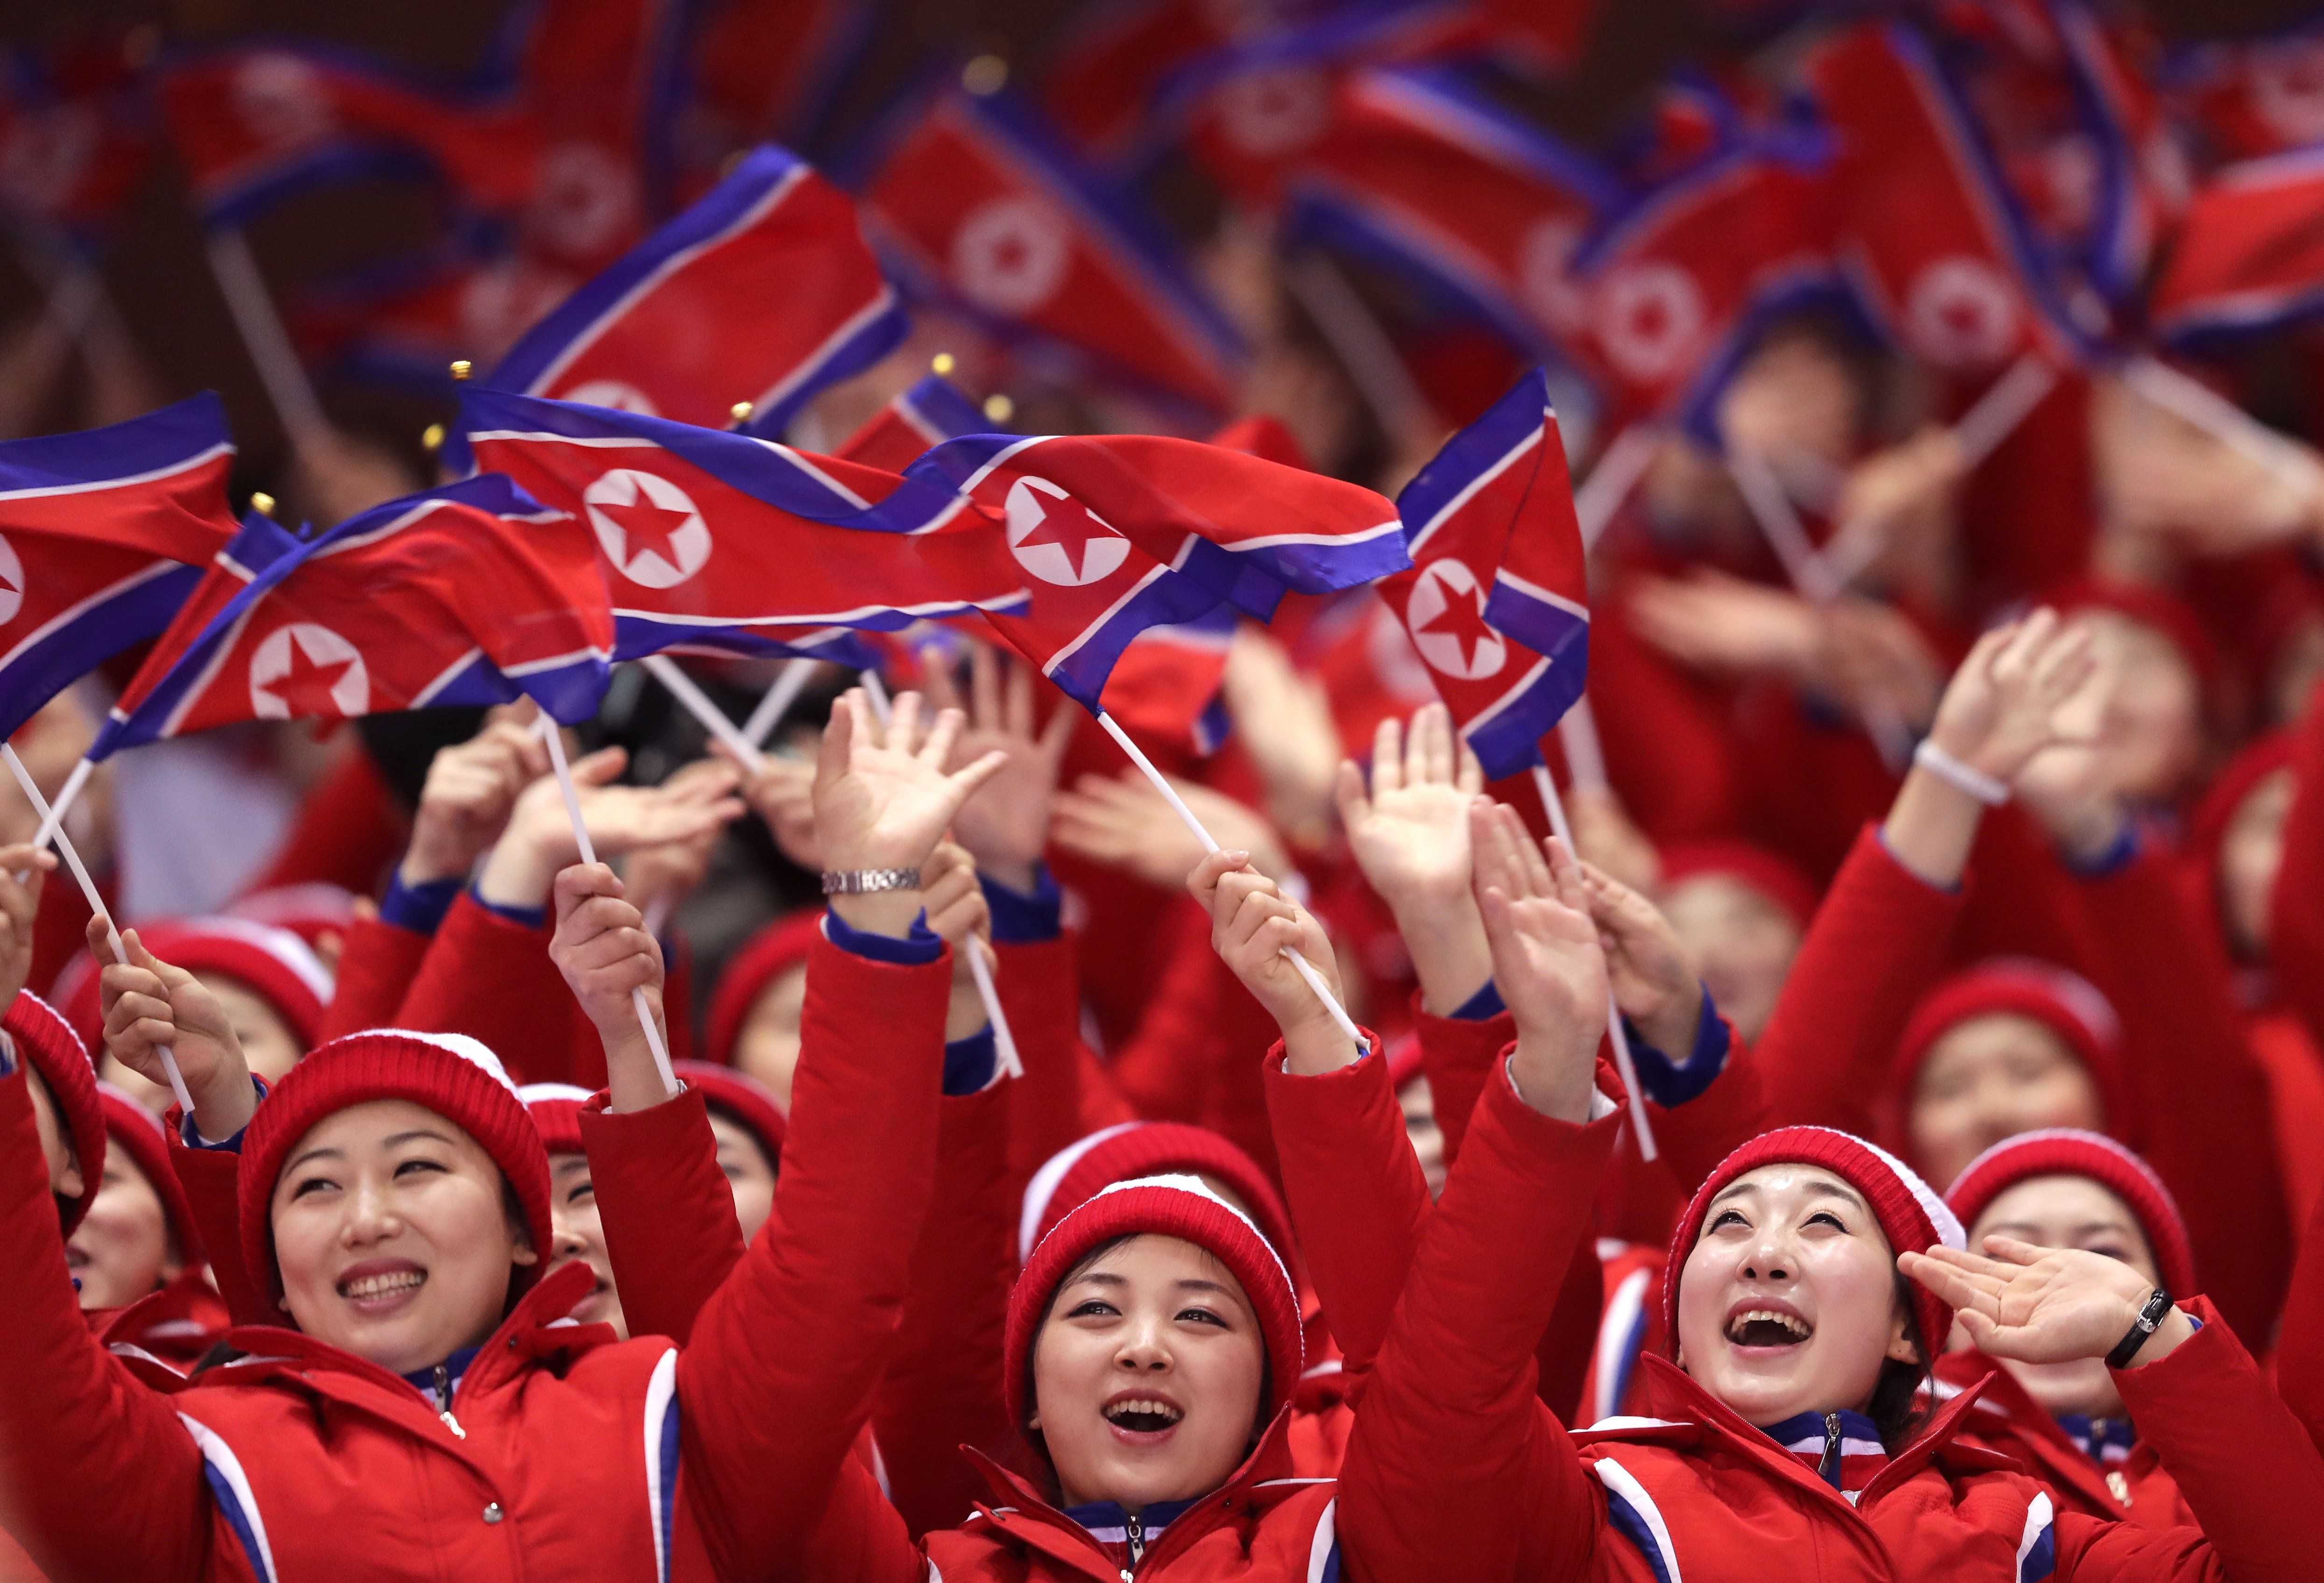 GANGNEUNG, SOUTH KOREA - FEBRUARY 14:  North Korean cheerleaders wave flags during the Pair Skating Short Program on day five of the PyeongChang 2018 Winter Olympics at Gangneung Ice Arena on February 14, 2018 in Gangneung, South Korea.  (Photo by Richard Heathcote/Getty Images)